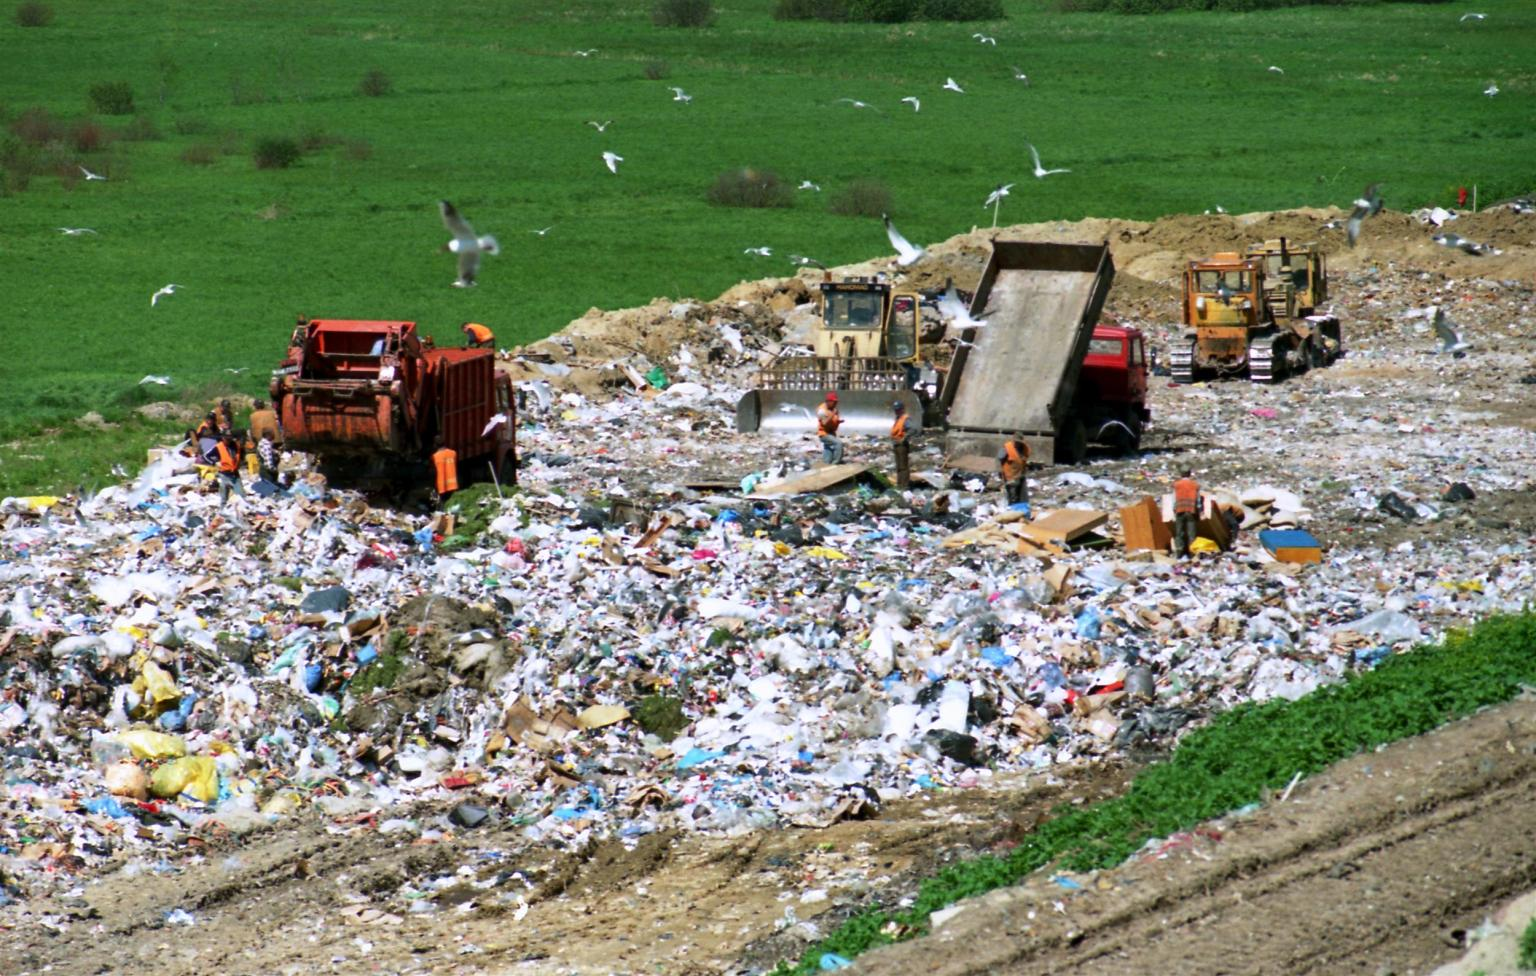 Landfill sites are a hotly debated topic